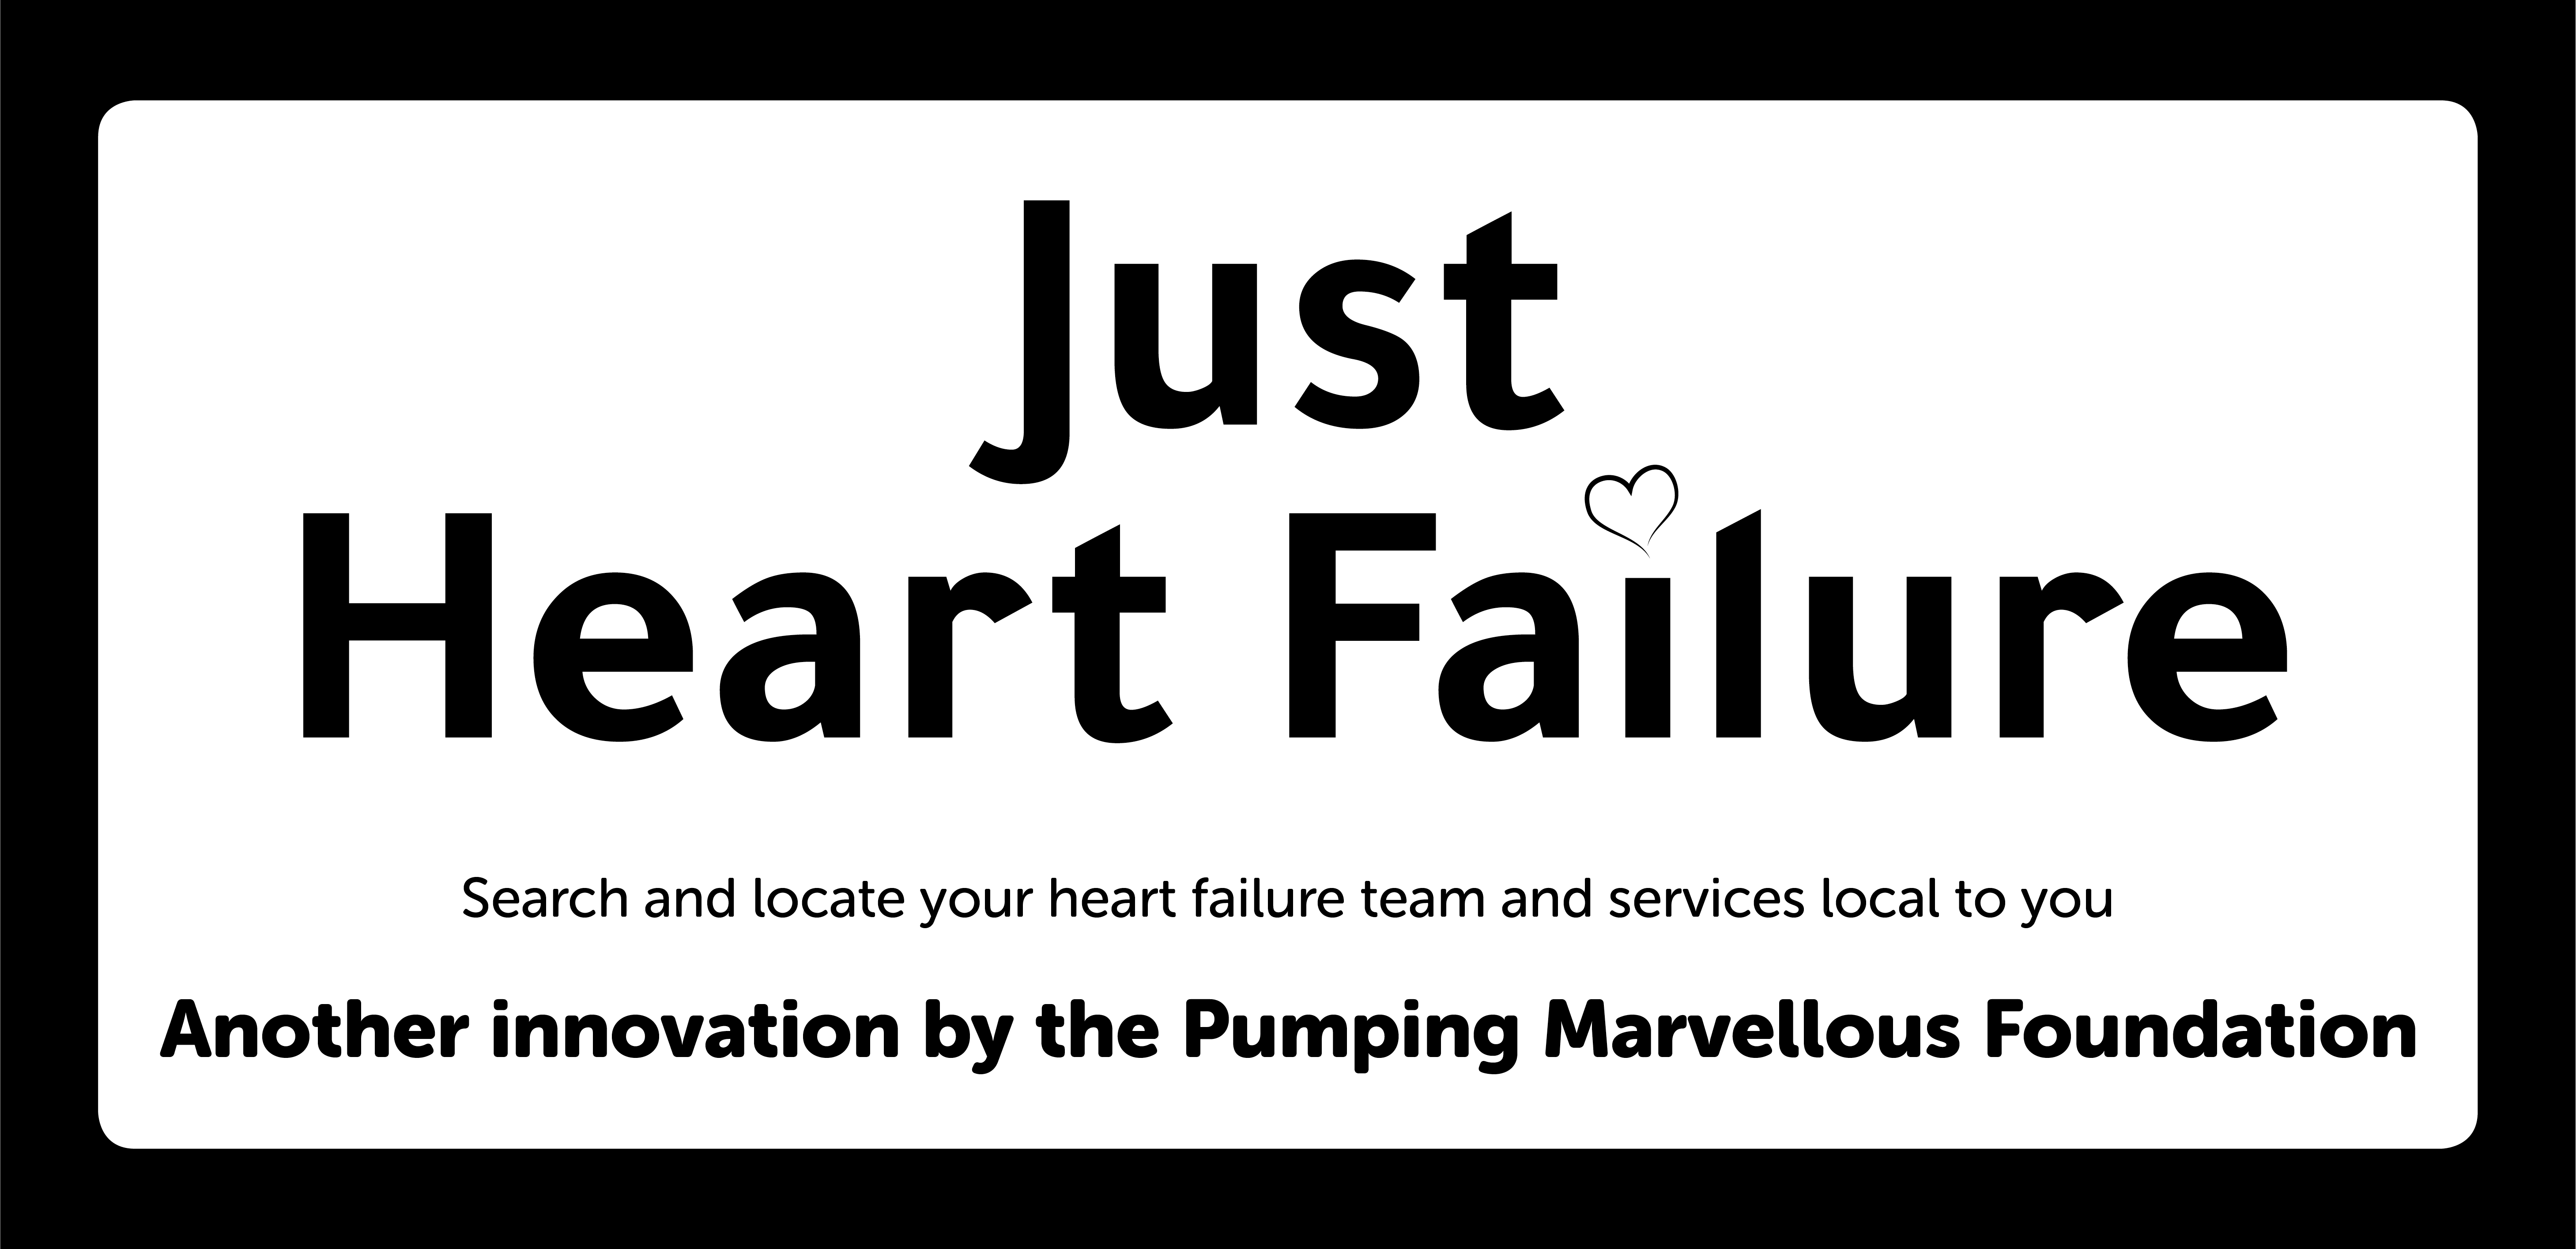 Just Heart Failure